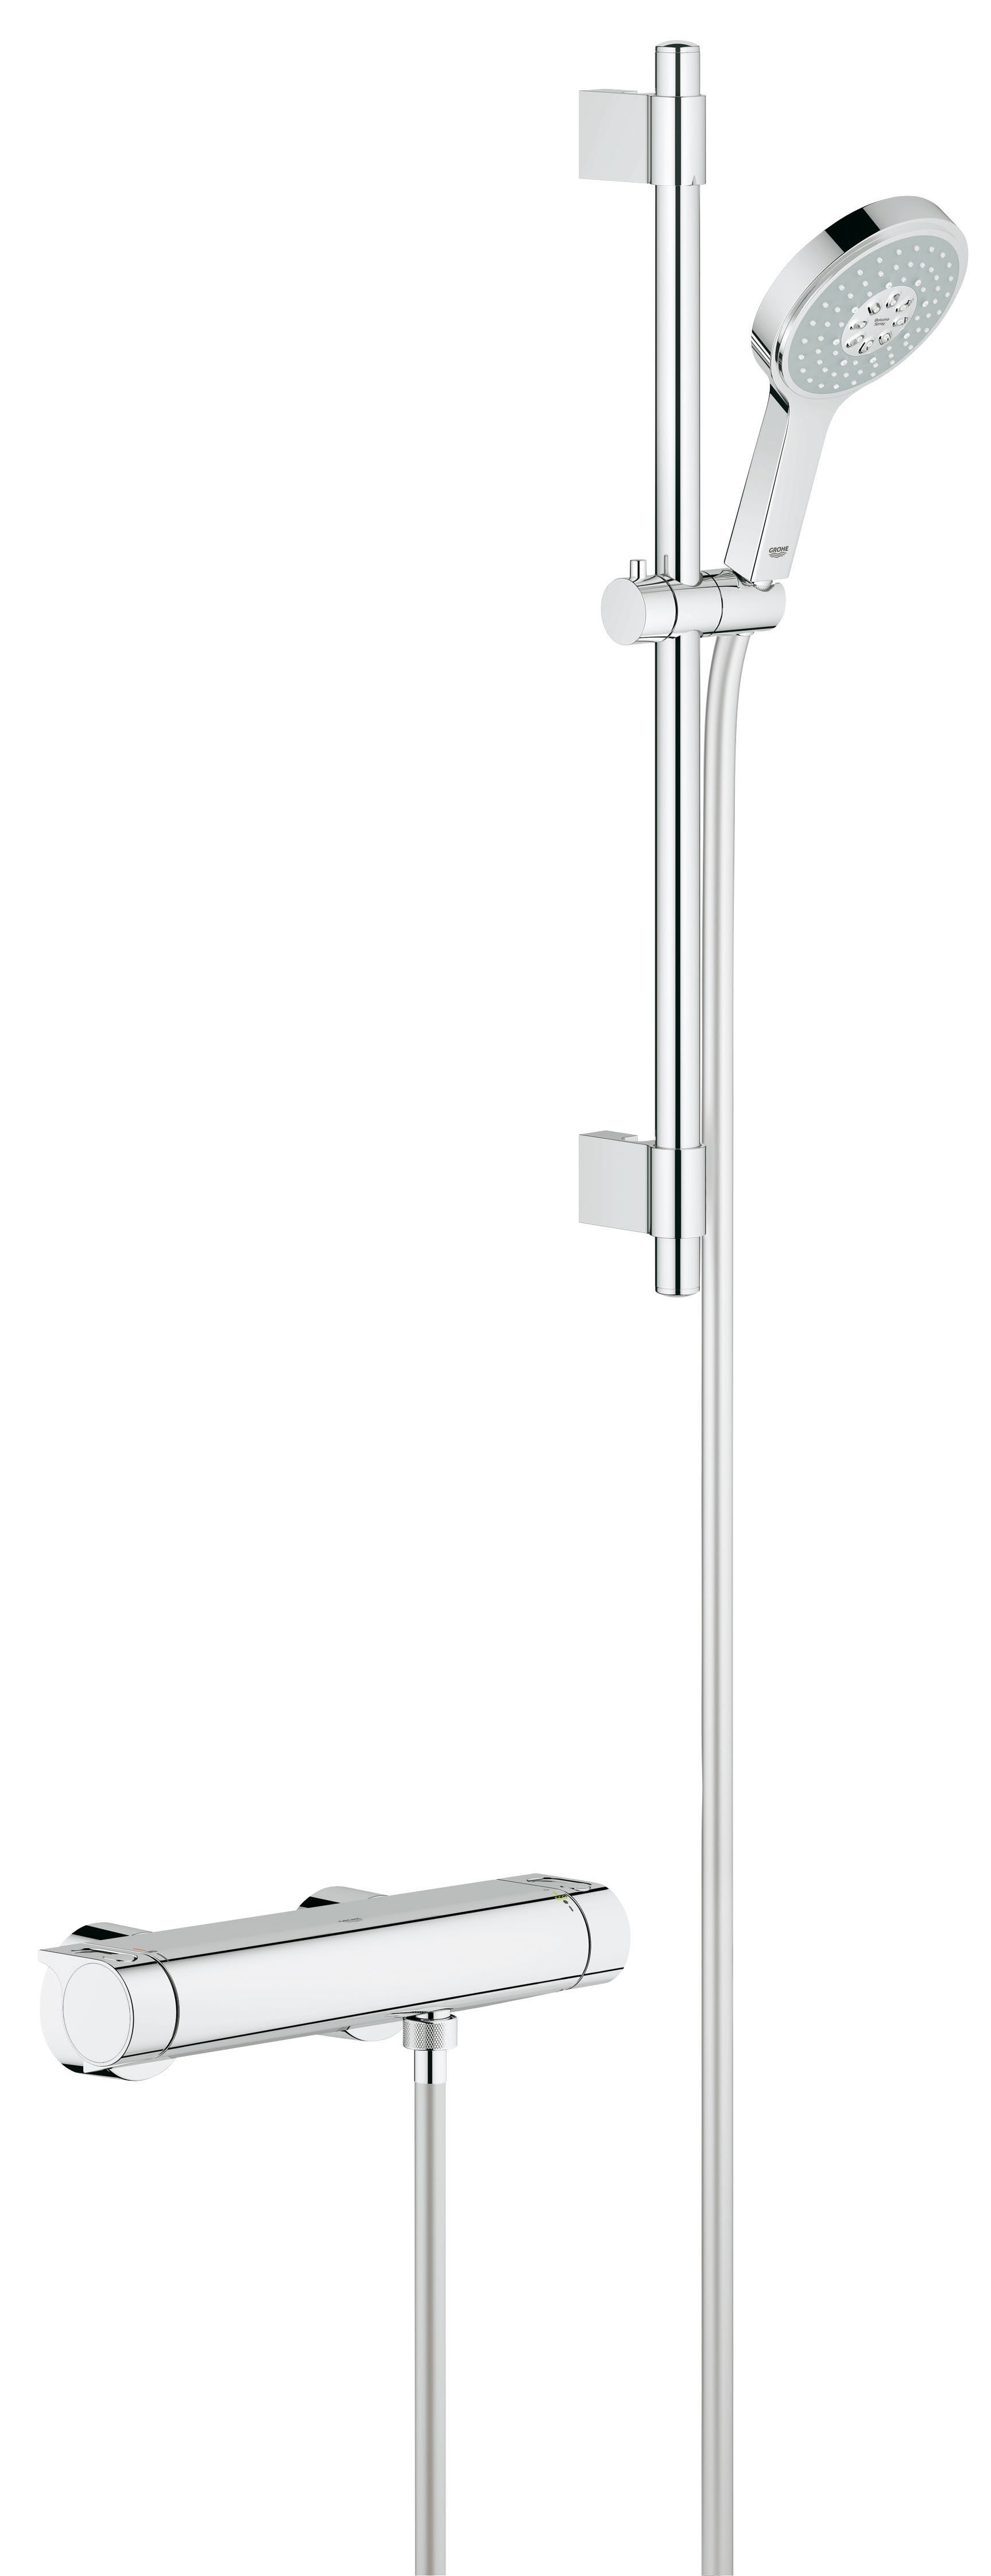 Grohe 34281001 Grohtherm 2000 � ������� ����������, ����